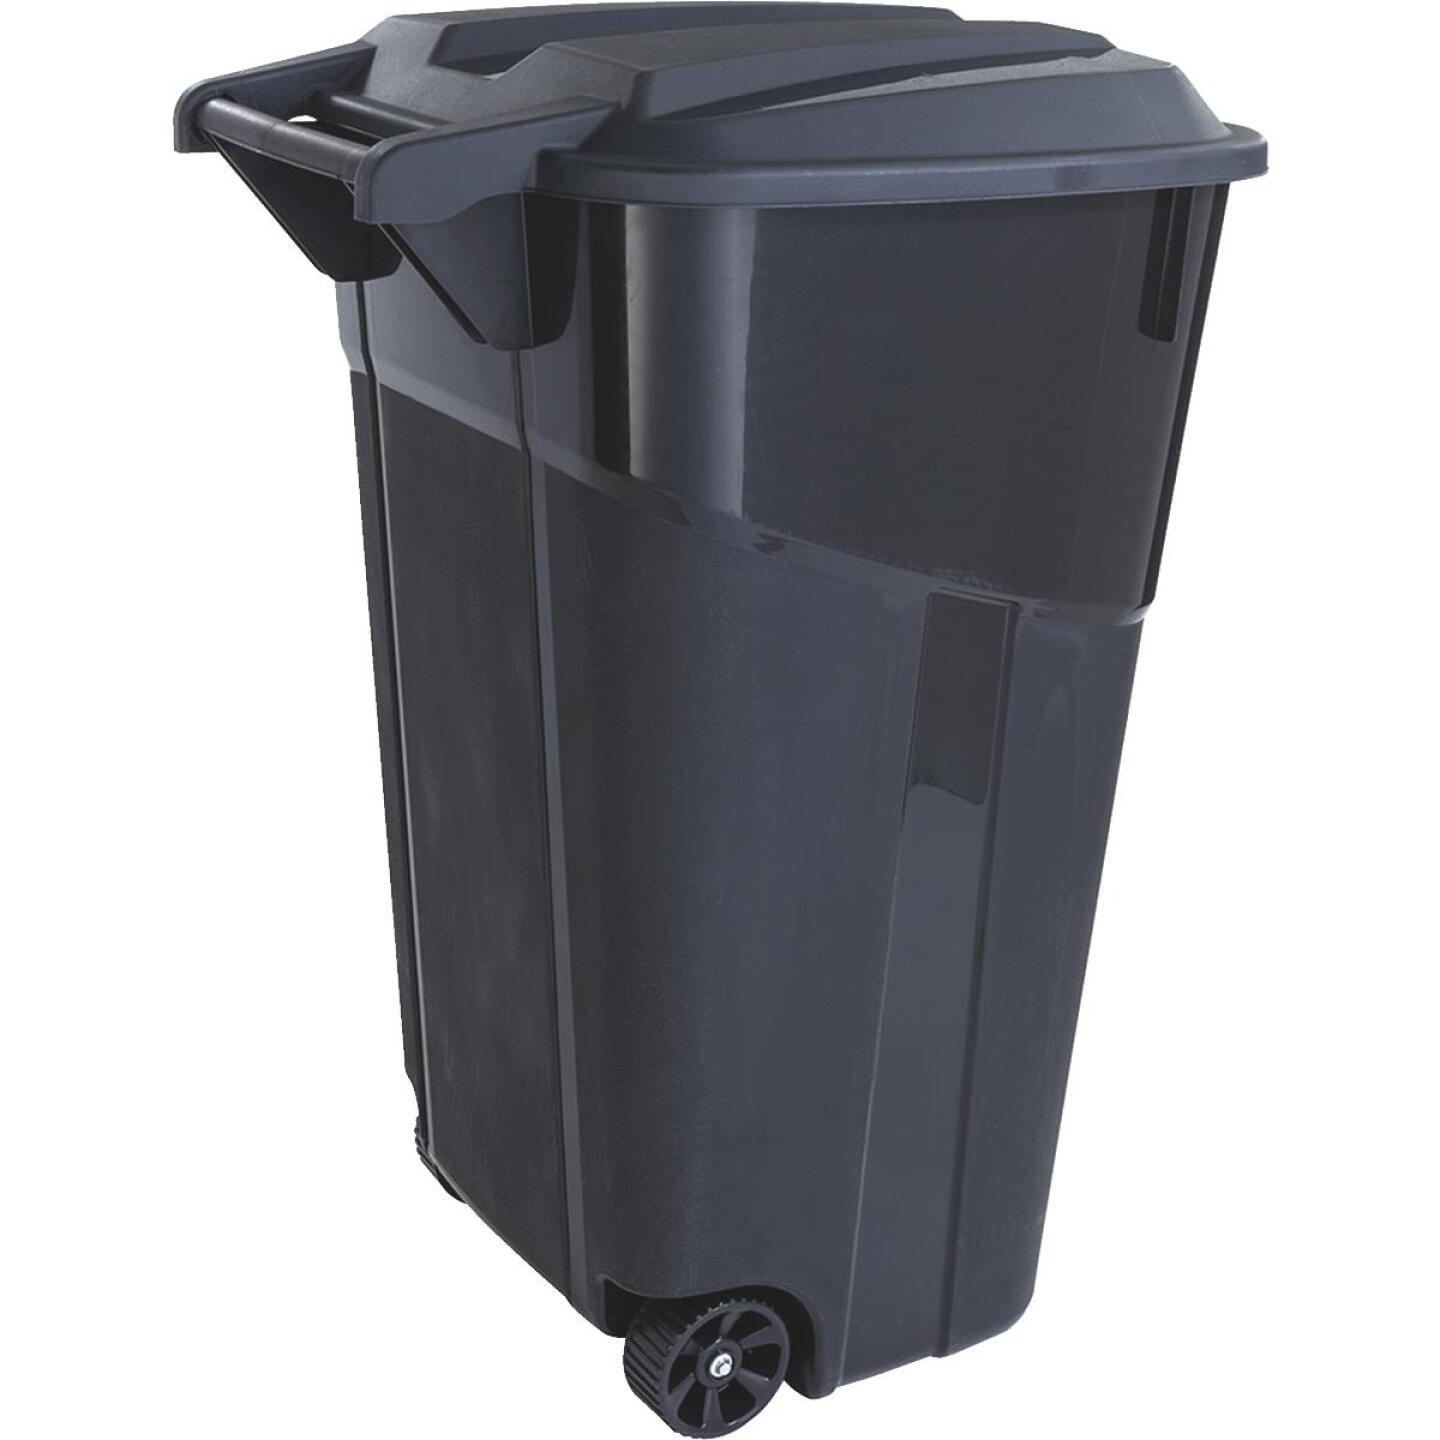 United Solutions Rough and Rugged 32 Gal. Outdoor Trash Can with Attached Lid Image 3